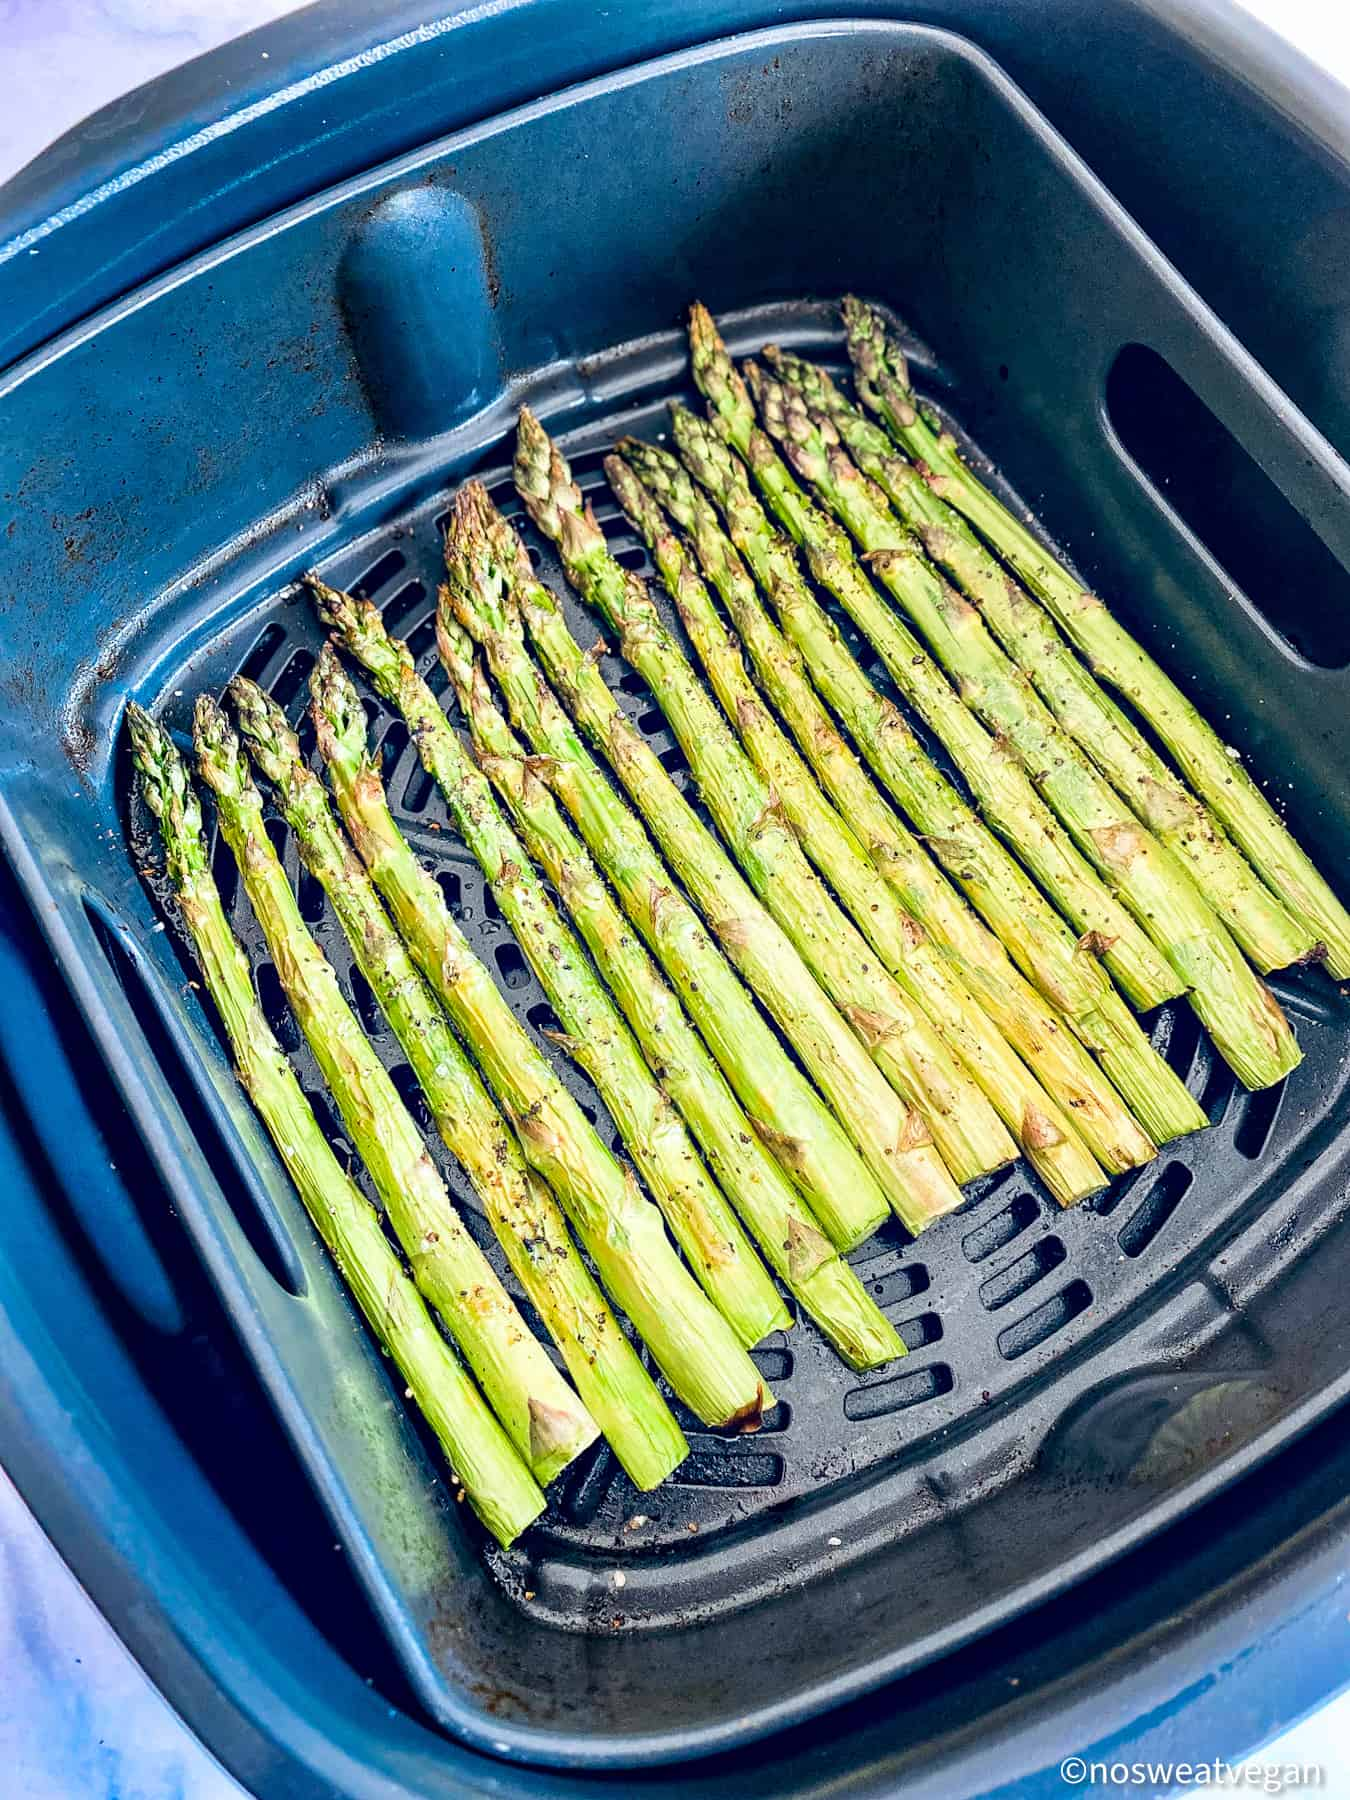 Crispy roasted asparagus in air fryer.